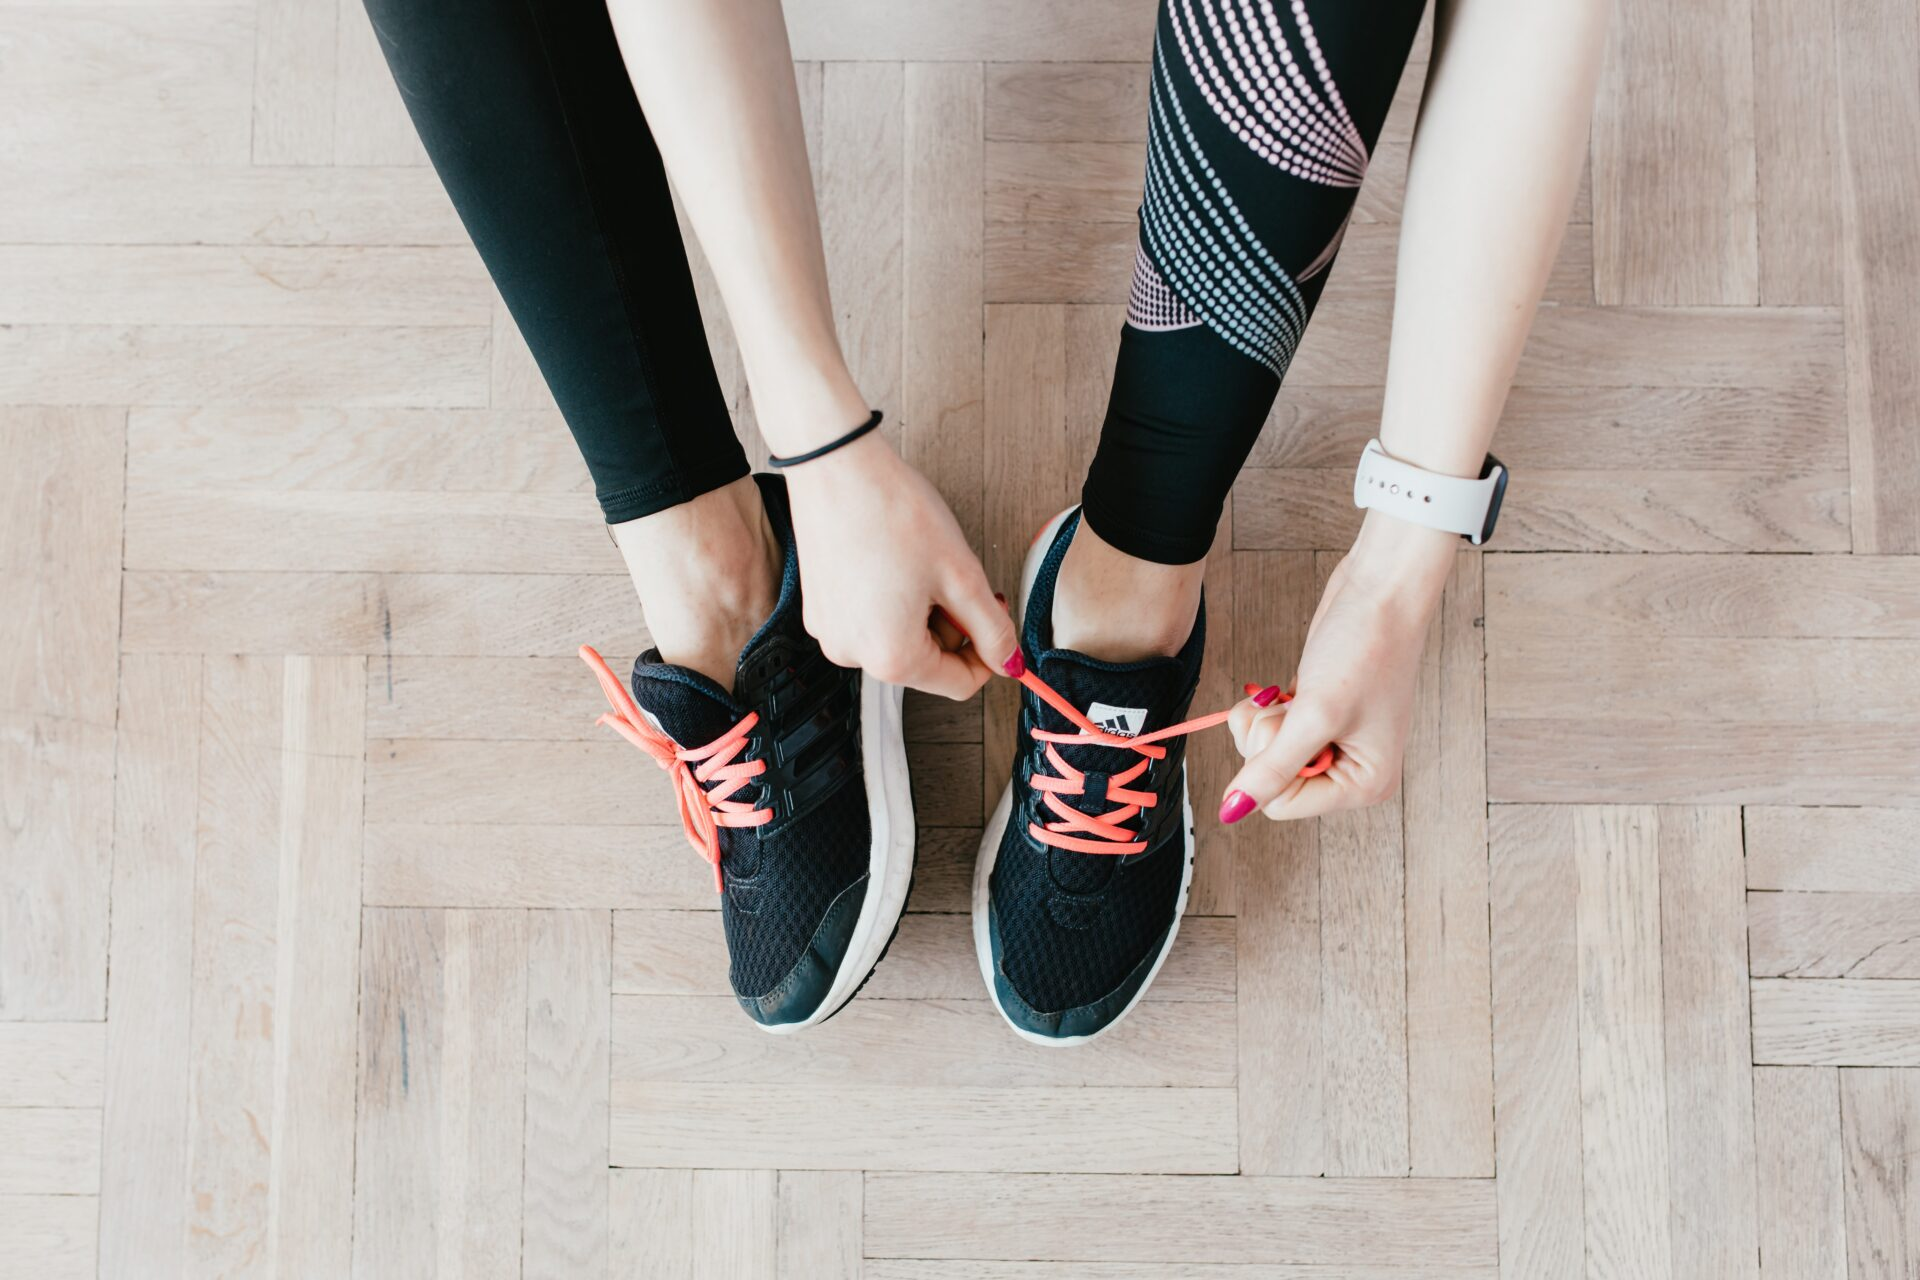 ladies legs and hands tying up trainers